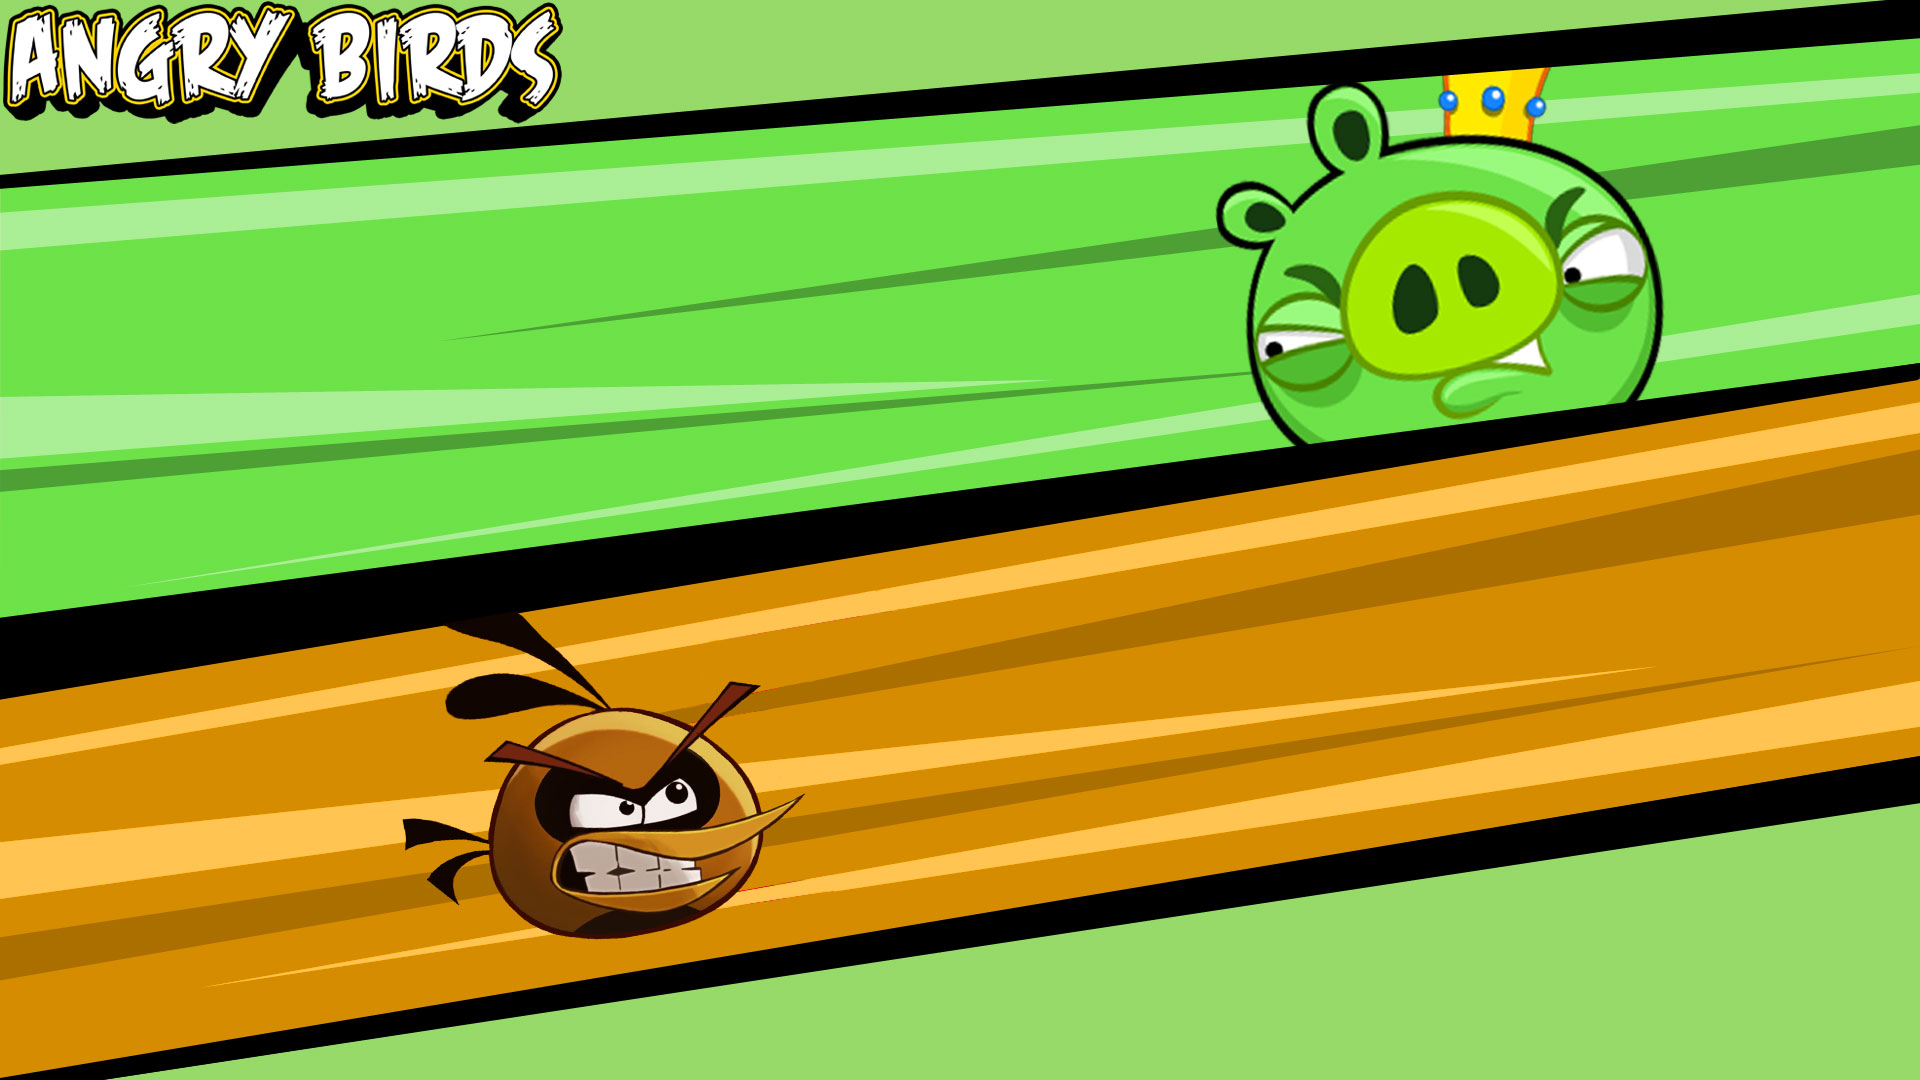 Angry Bird Space Wallpaper 3d Angry Birds Images Orange Bird Vs King Pig Hd Wallpaper